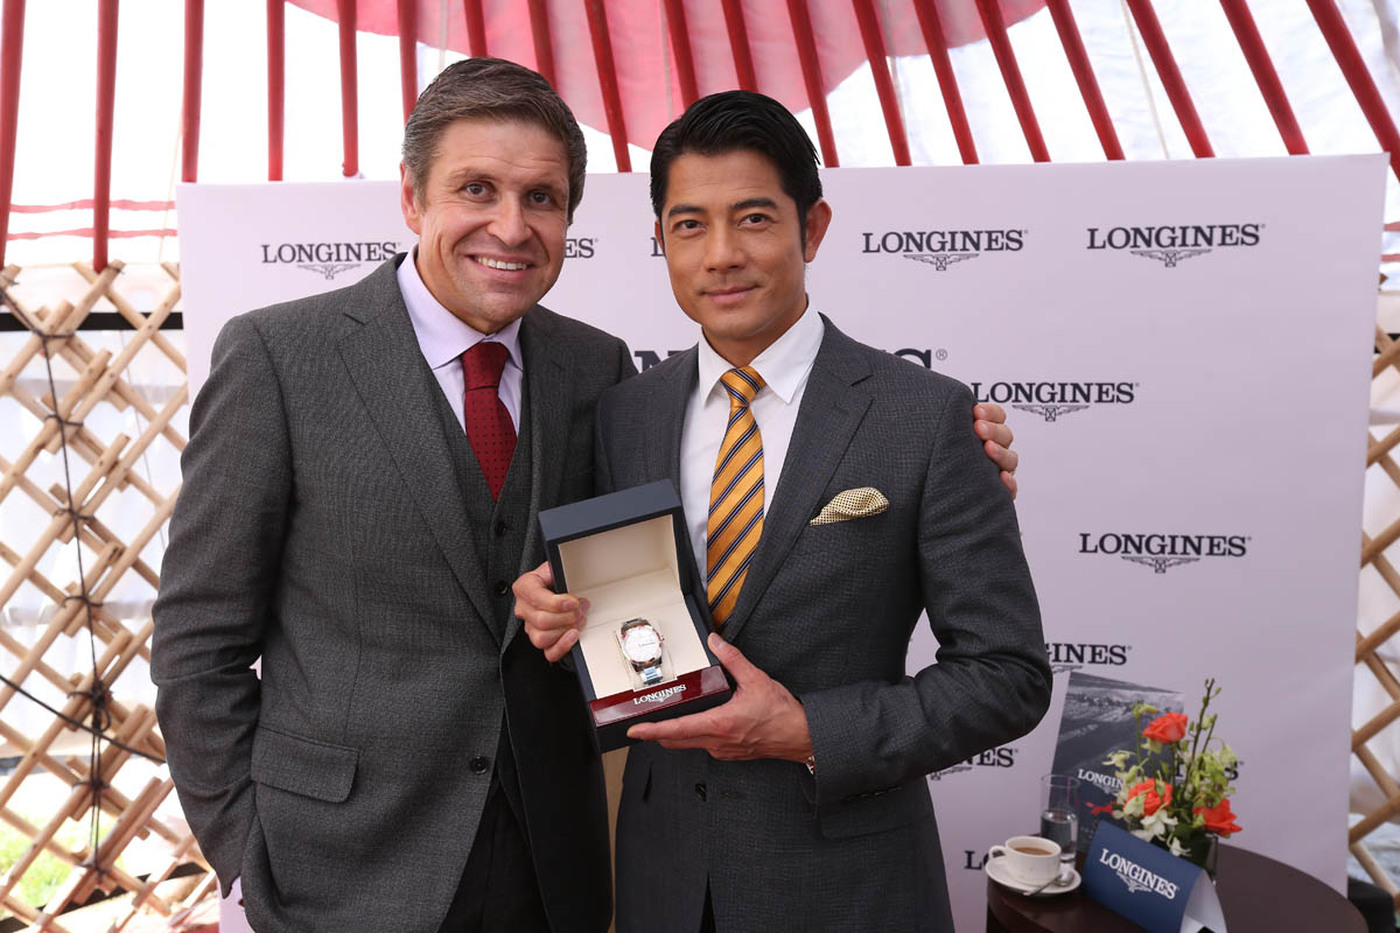 Longines Flat Racing Event: Longines at the China Equine Cultural Festival 4